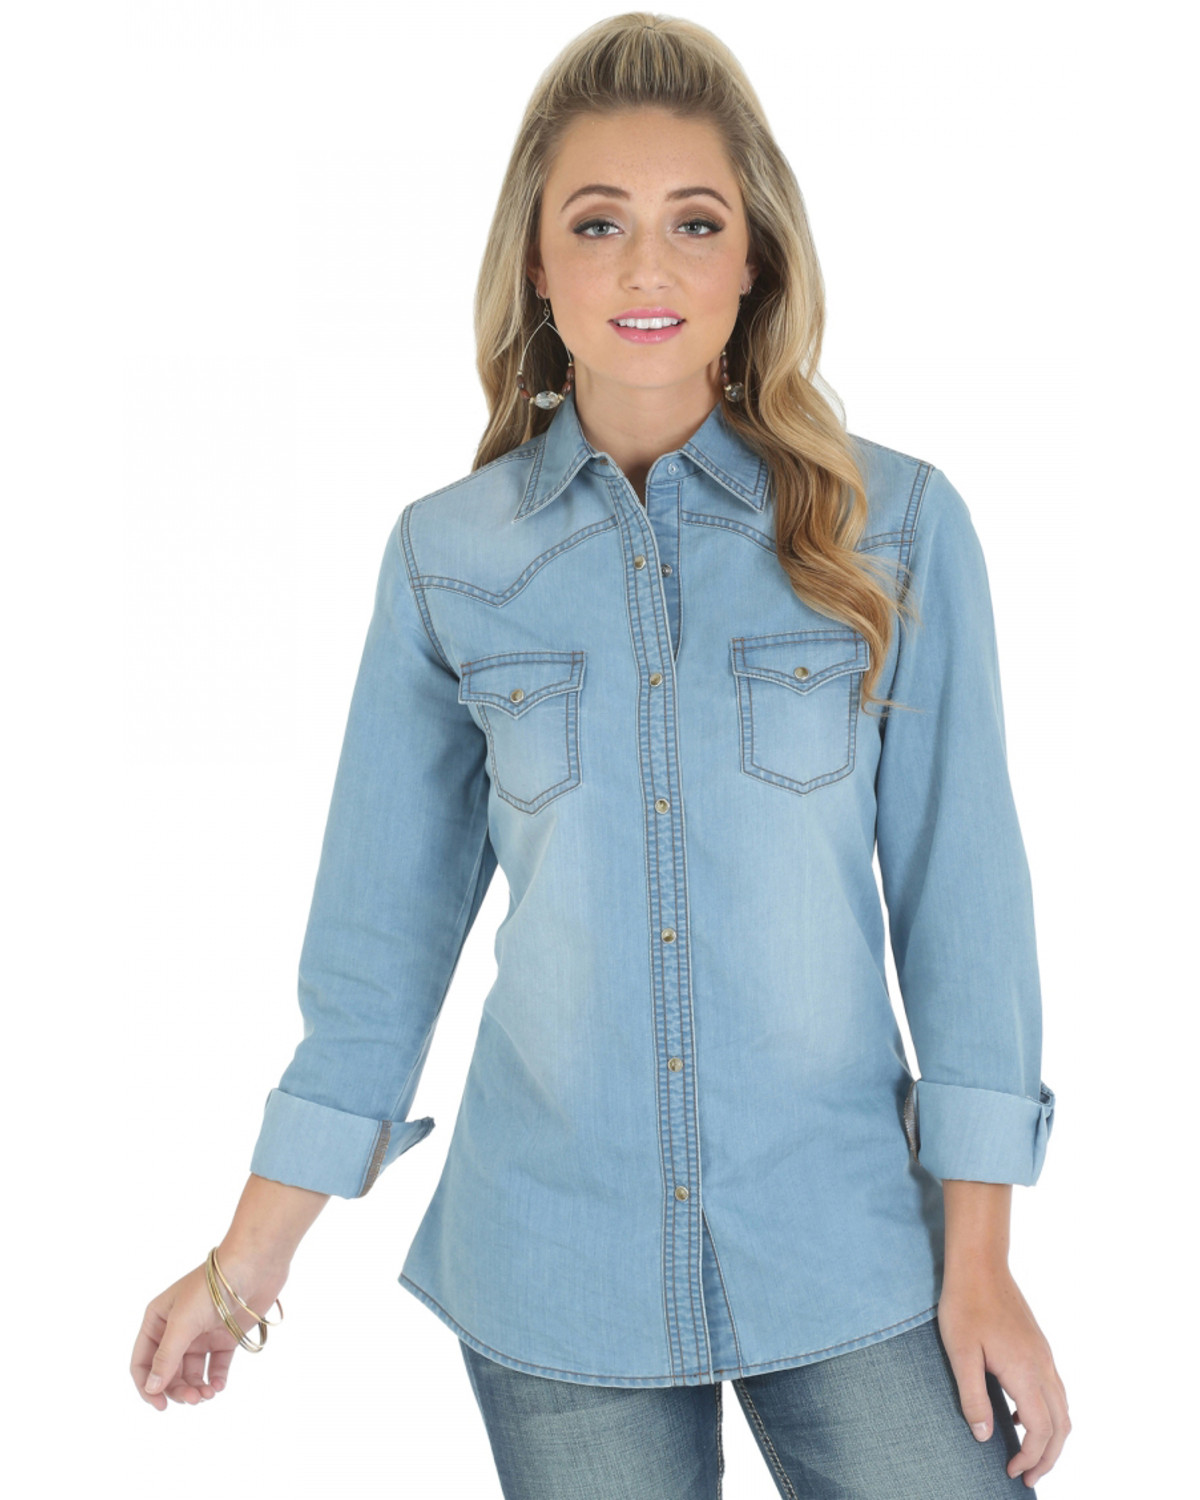 e18f53f5fa8c5f Female Denim Long Sleeve Shirt – EDGE Engineering and Consulting Limited